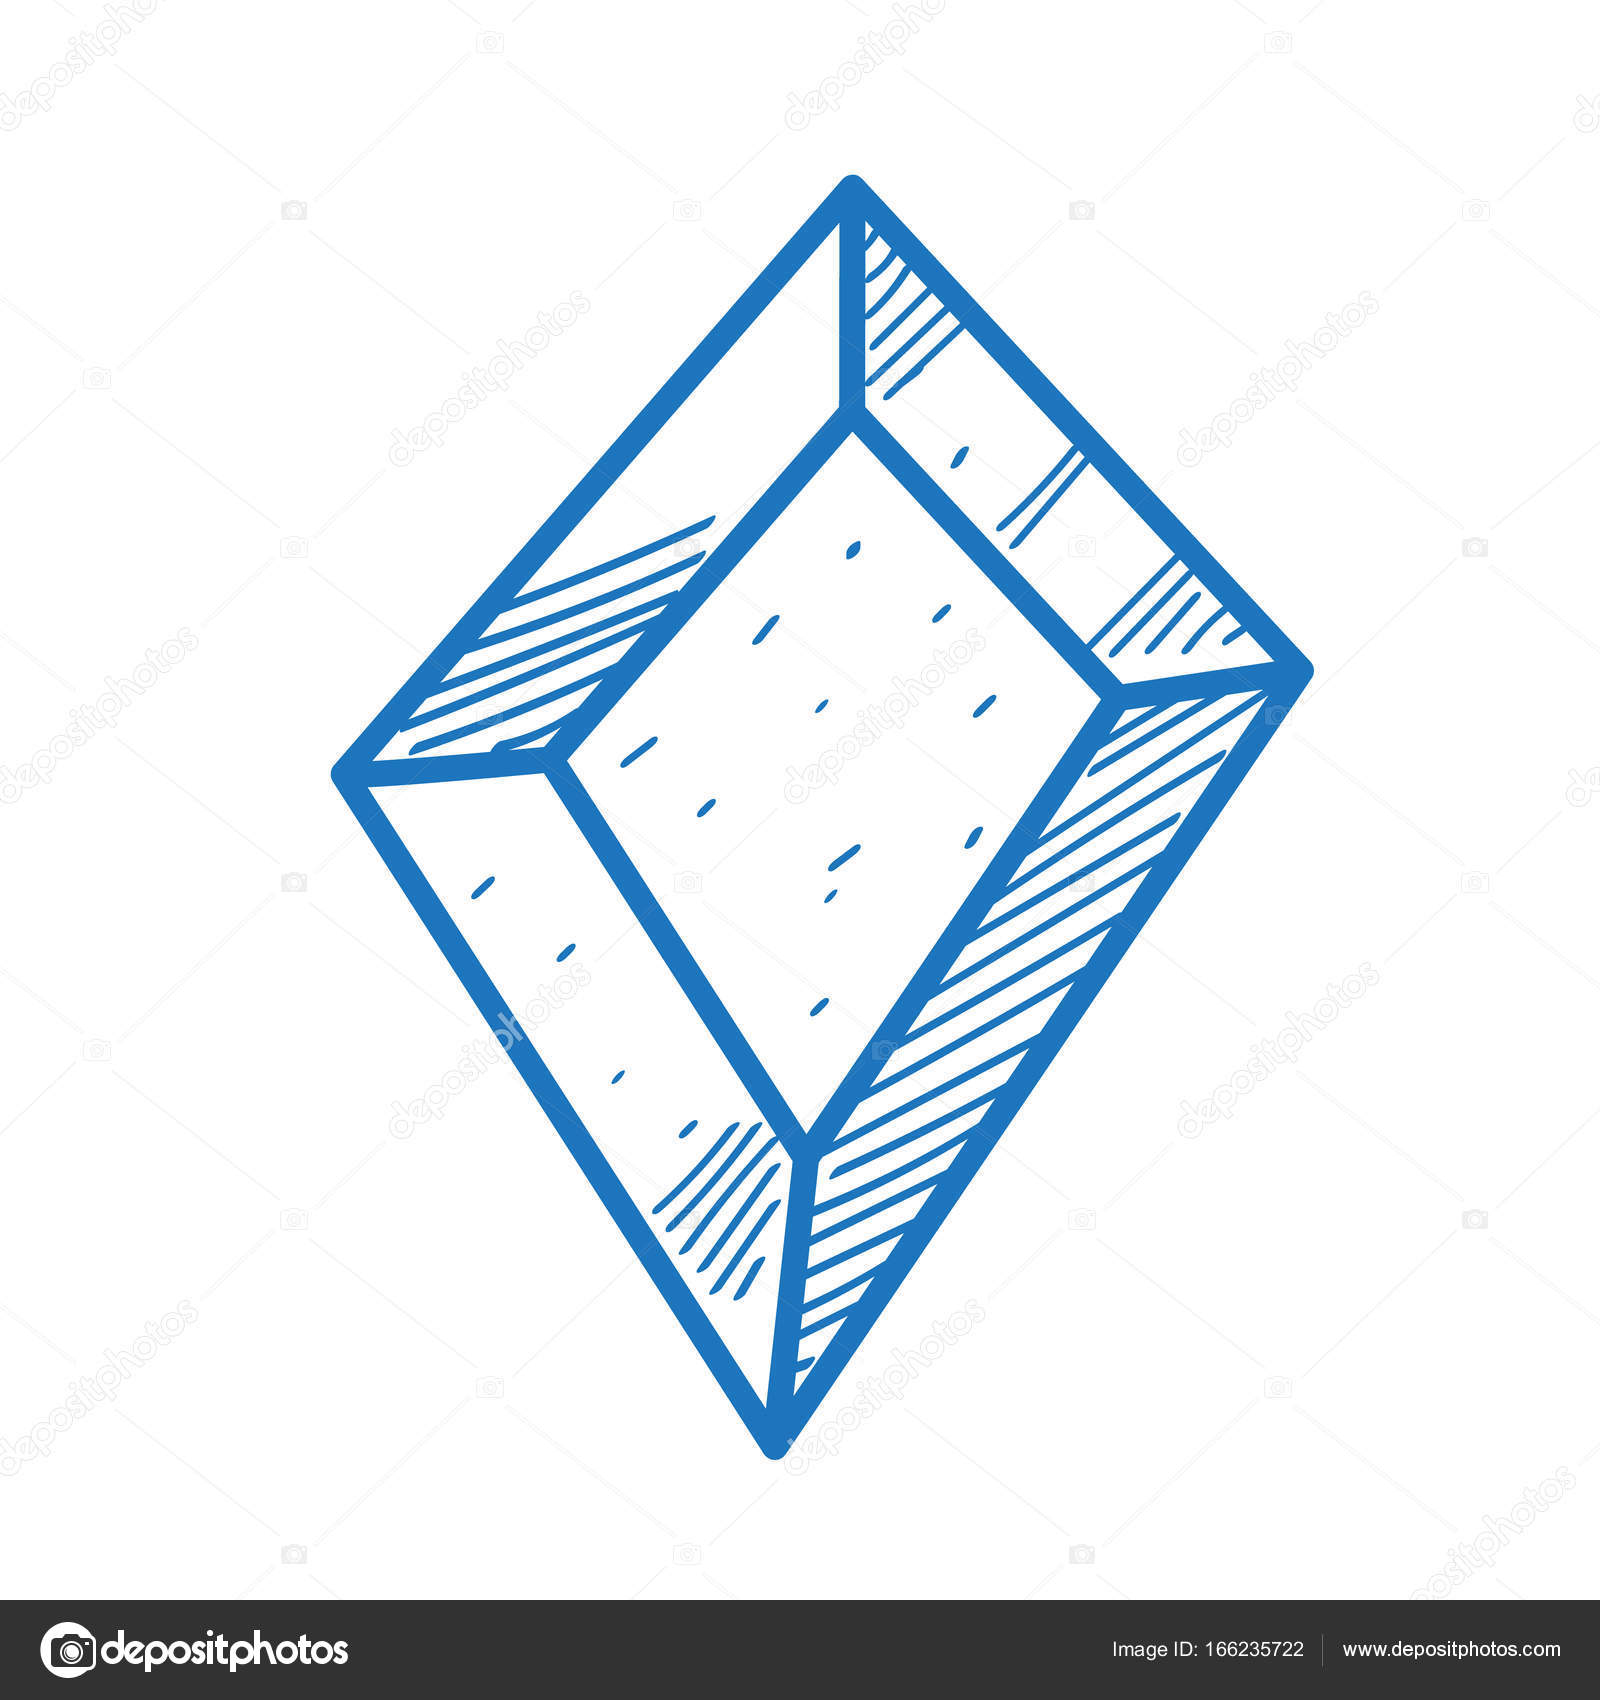 The symbol of diamonds sketch logo stock vector filkusto the symbol of diamonds is a sketch of the logo element for infographics in the hand drawing style vector by filkusto buycottarizona